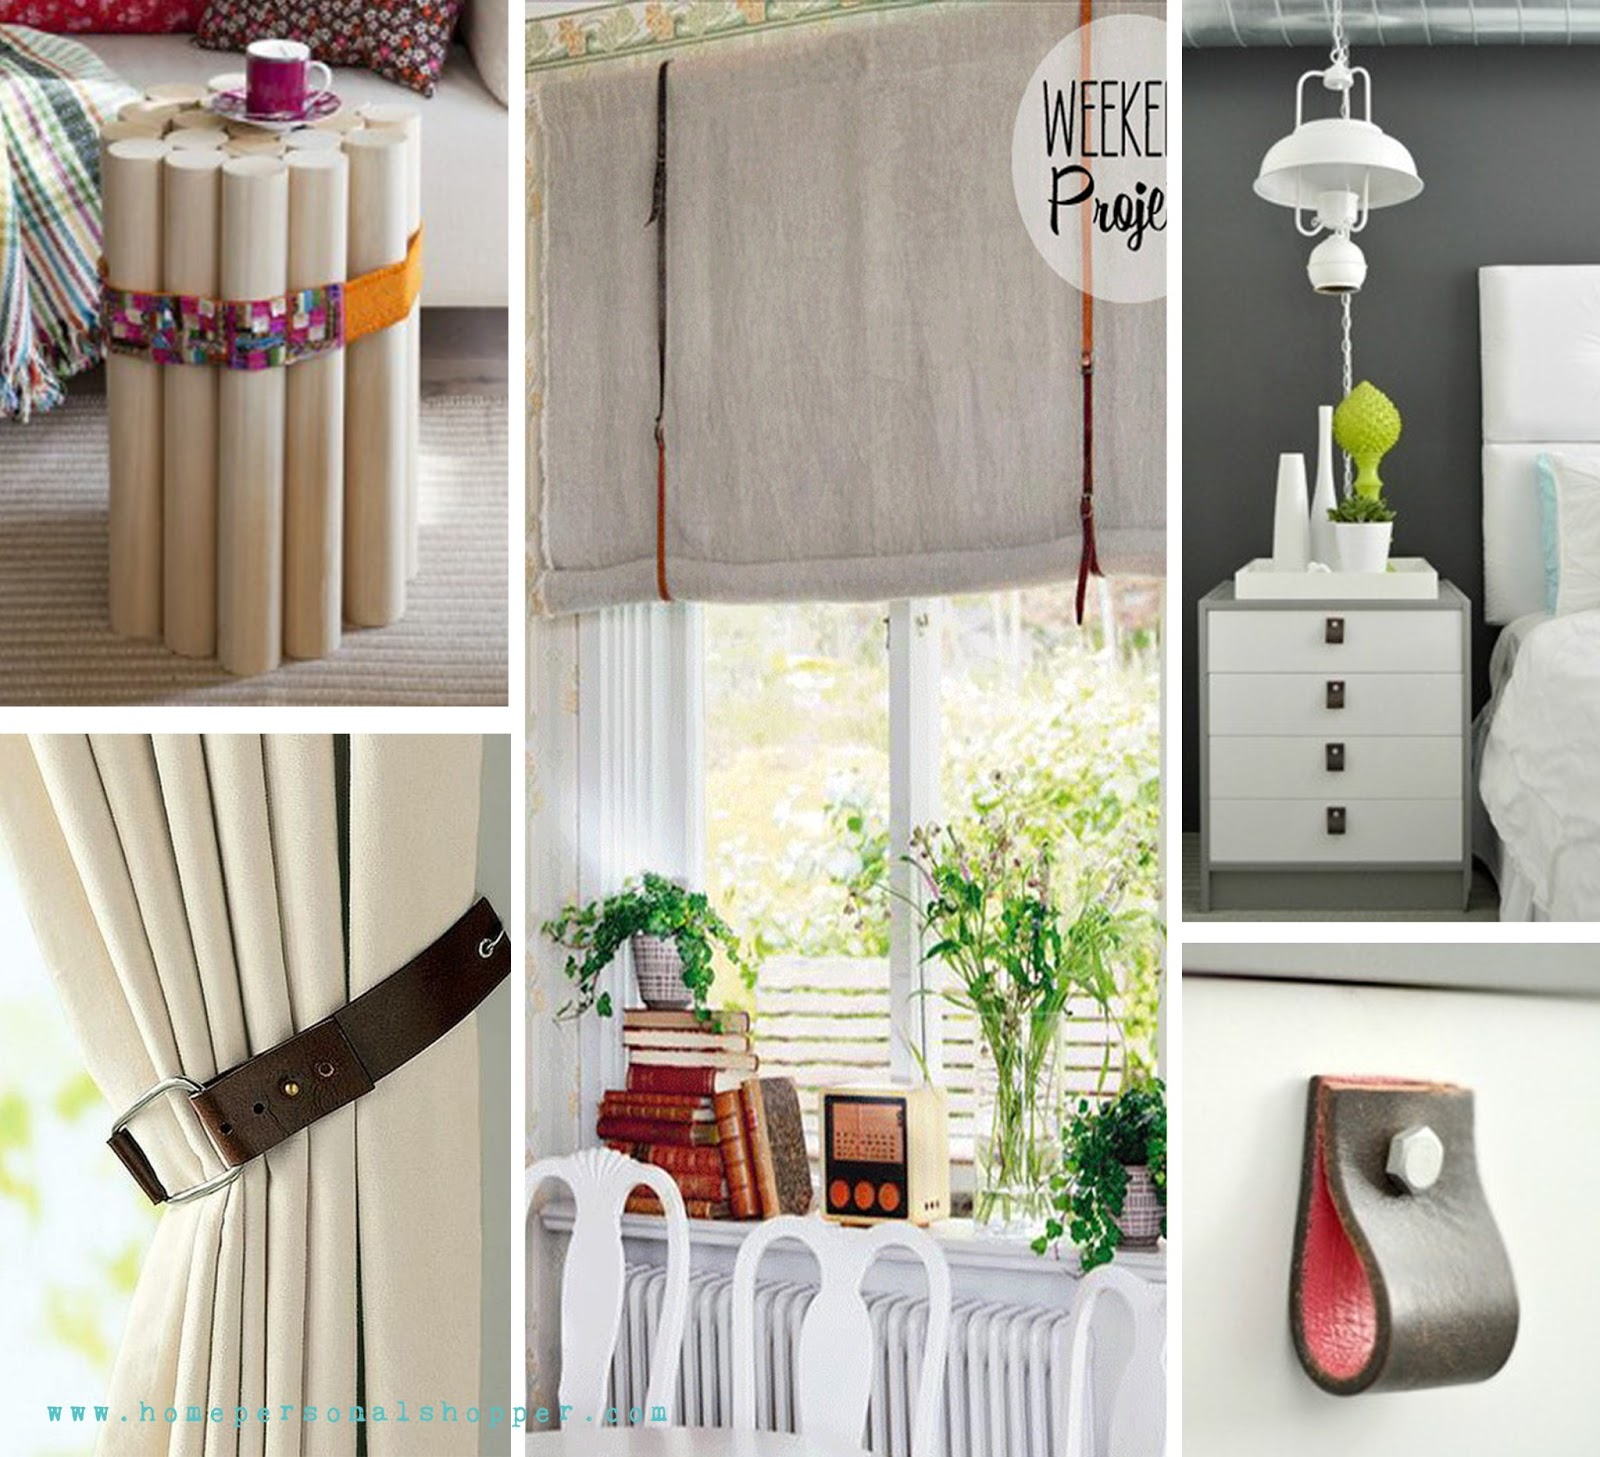 Pin pin cenefas y cortinas pelautscom on pinterest on for Decoracion cortinas